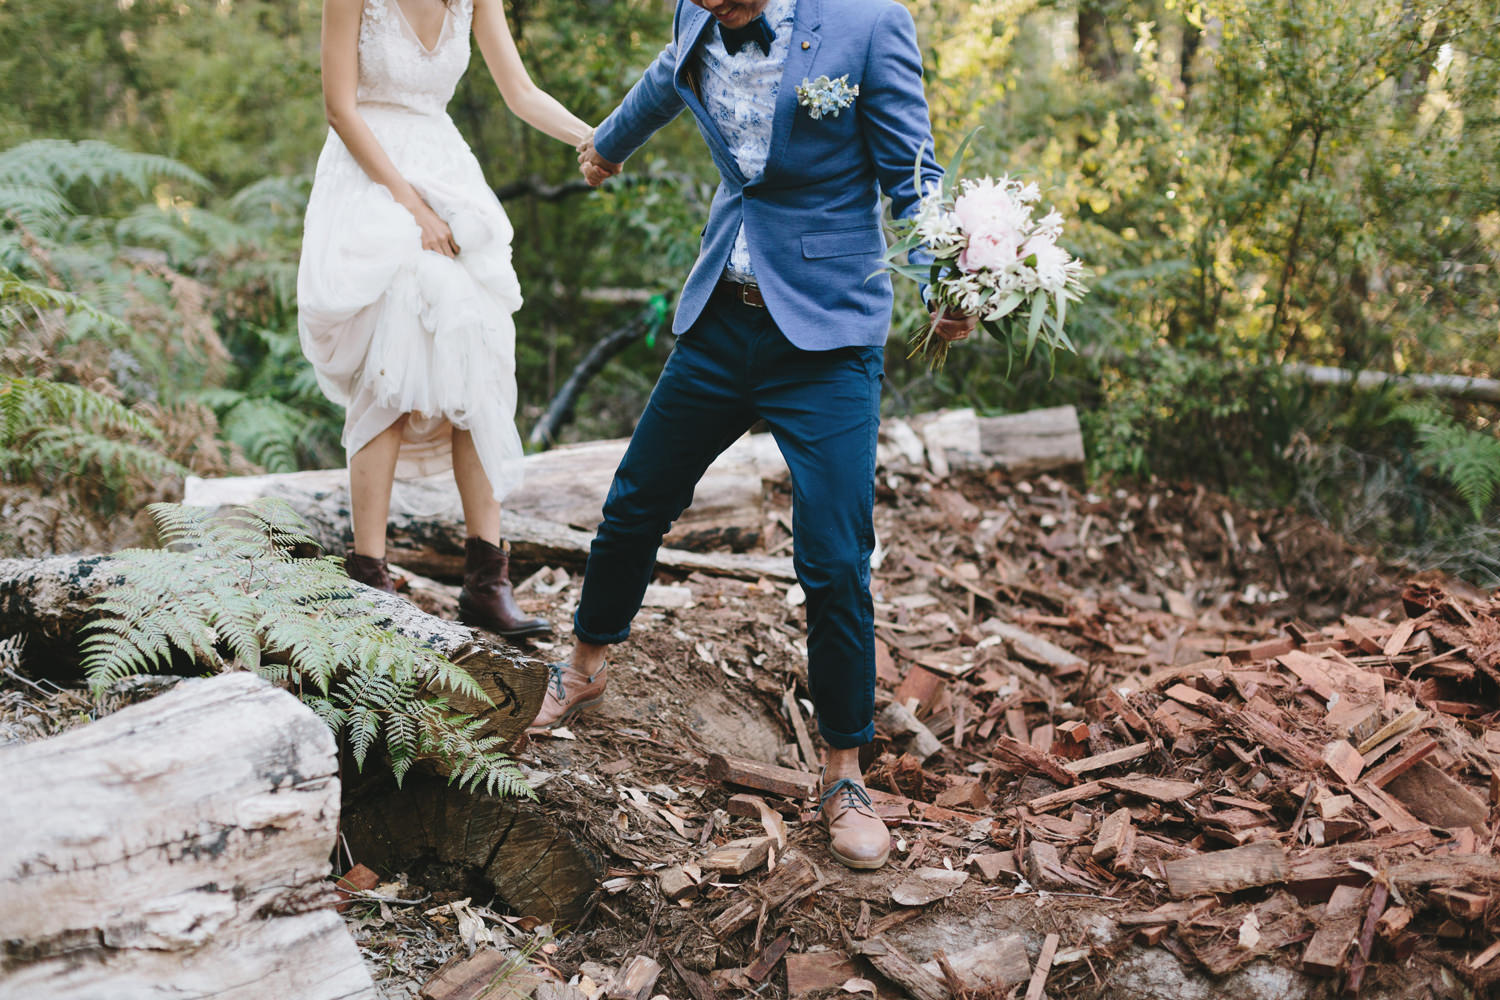 141-Barn_Wedding_Australia_Sam_Ting.jpg